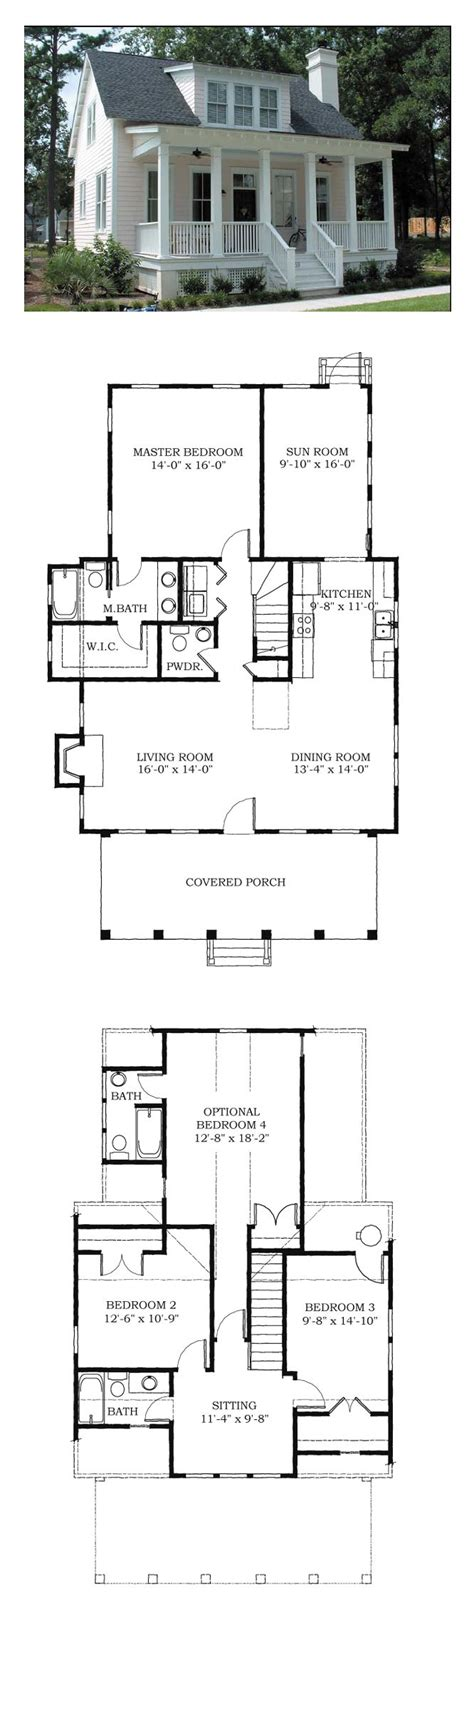 4 bedroom cottage house plans modern small house plans wolofi com